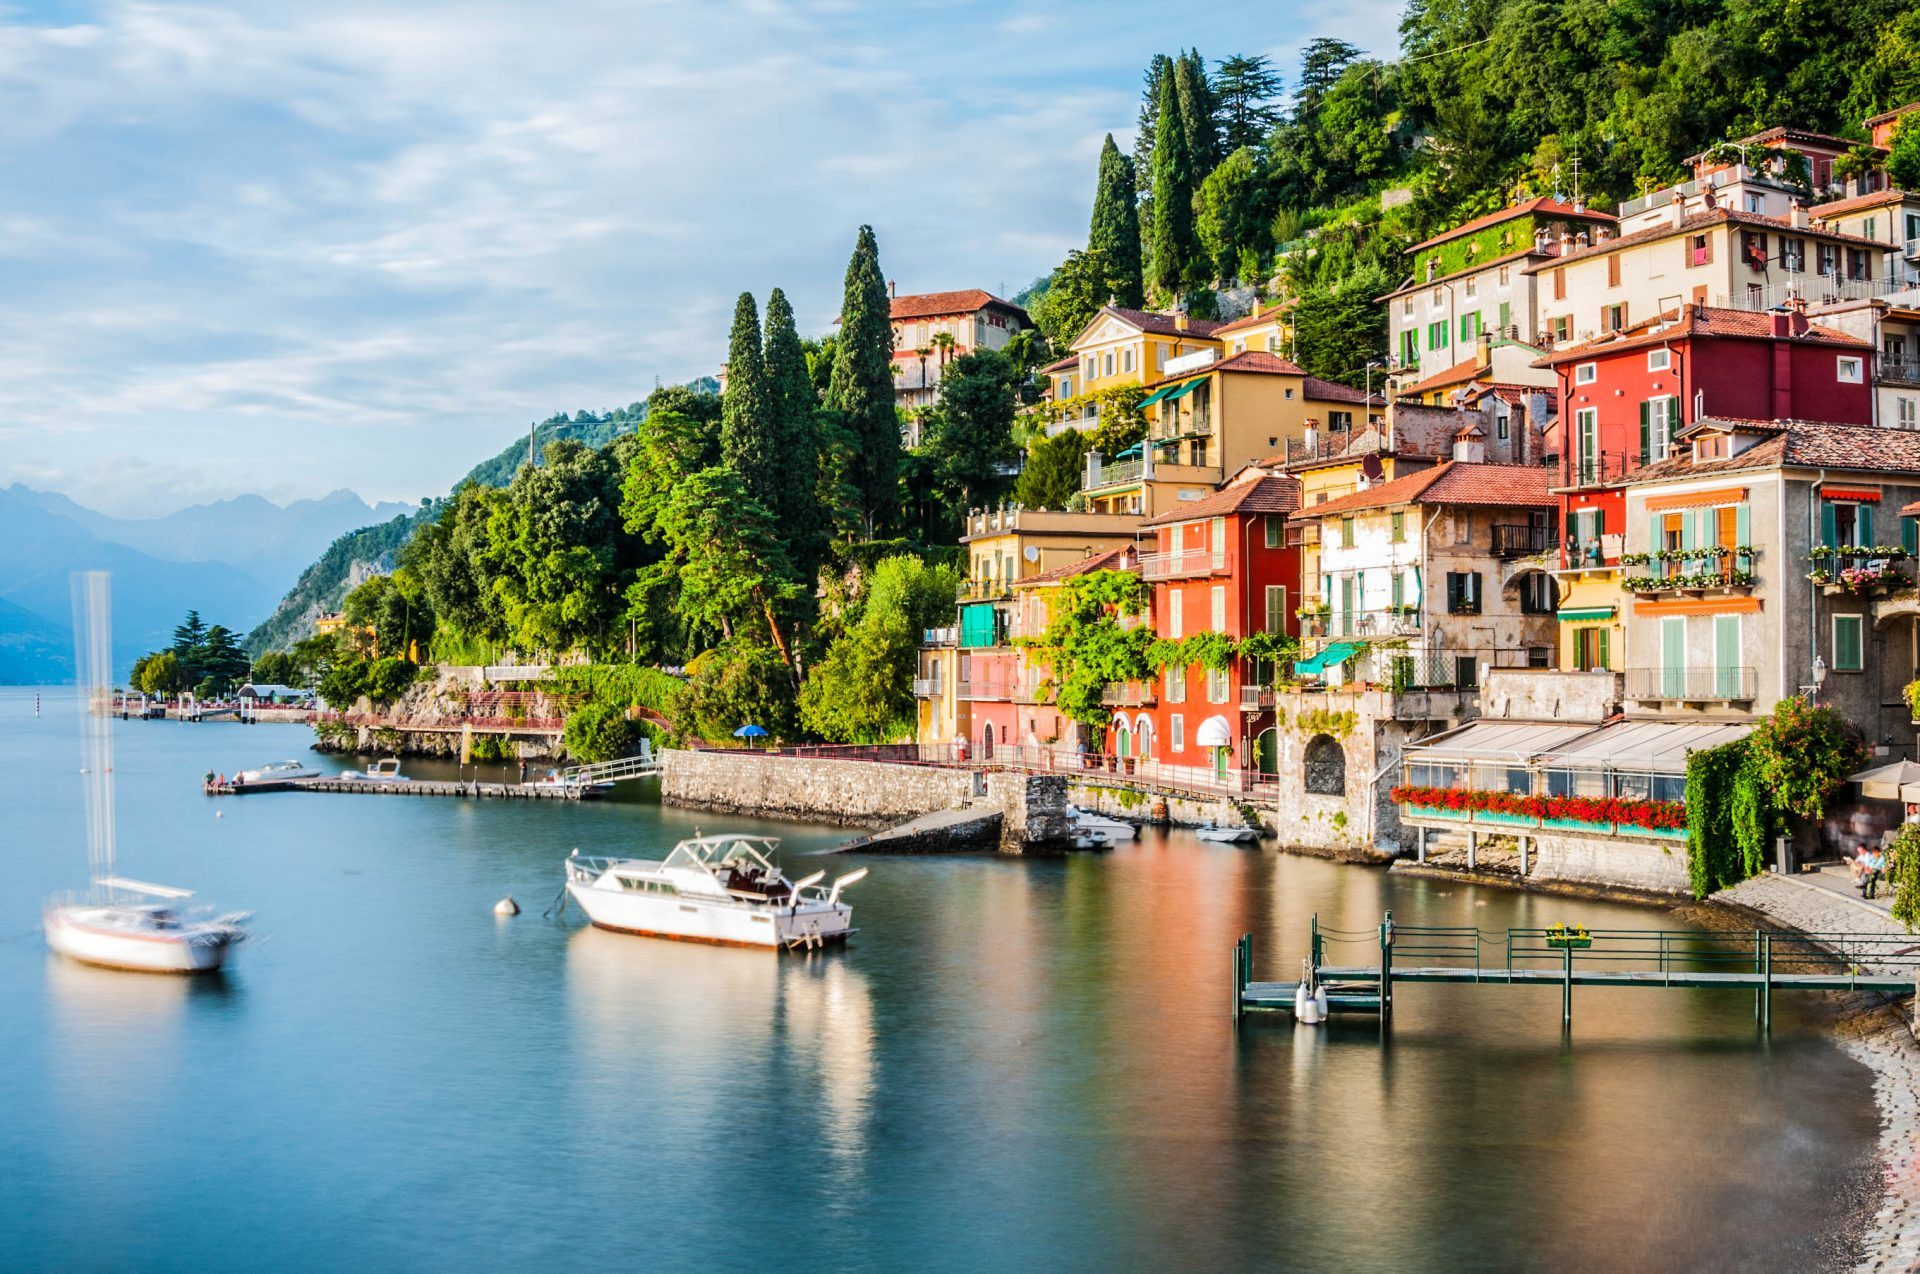 Varenna am Comer See in Italien